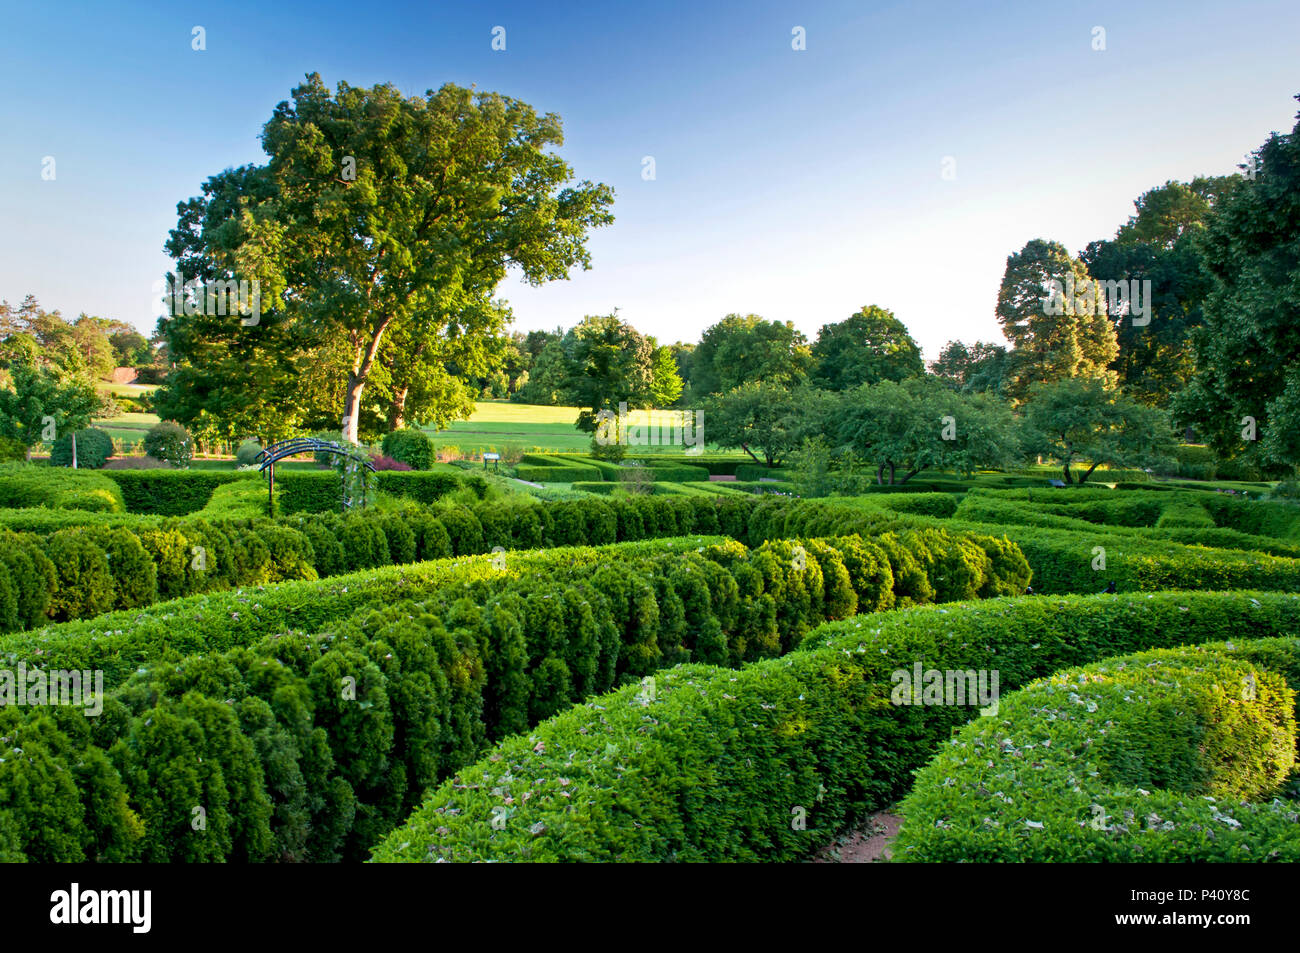 Hedges have been sculpted into an outdoor maze providing children a place to explore and play hide and seek. - Stock Image